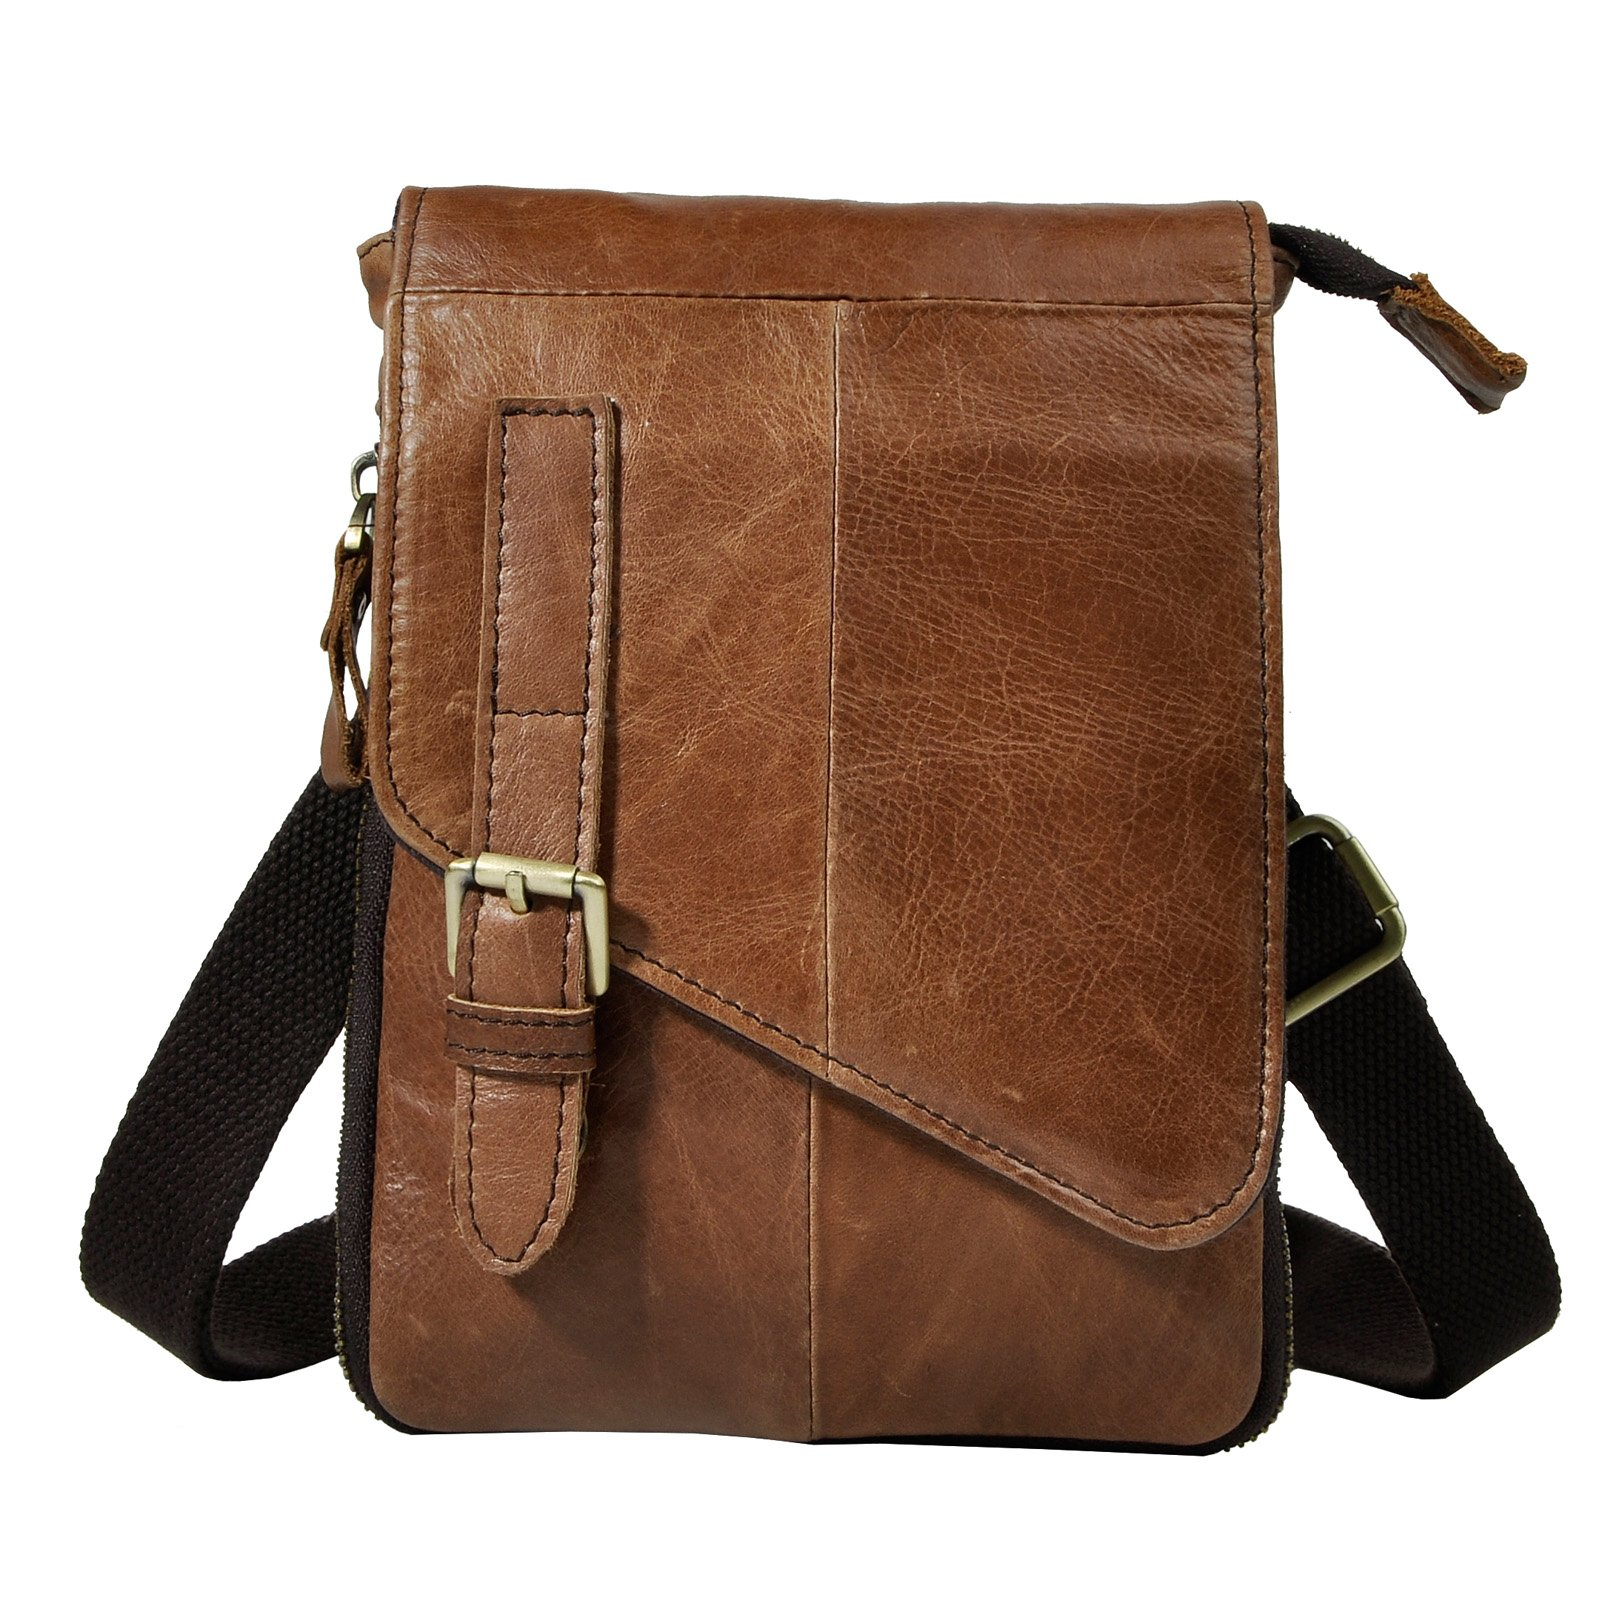 Le'aokuu Mens Genuine Leather Coffee Fanny Small Messenger Shoulder Waist Bag Pack (The 611-6 light brown)